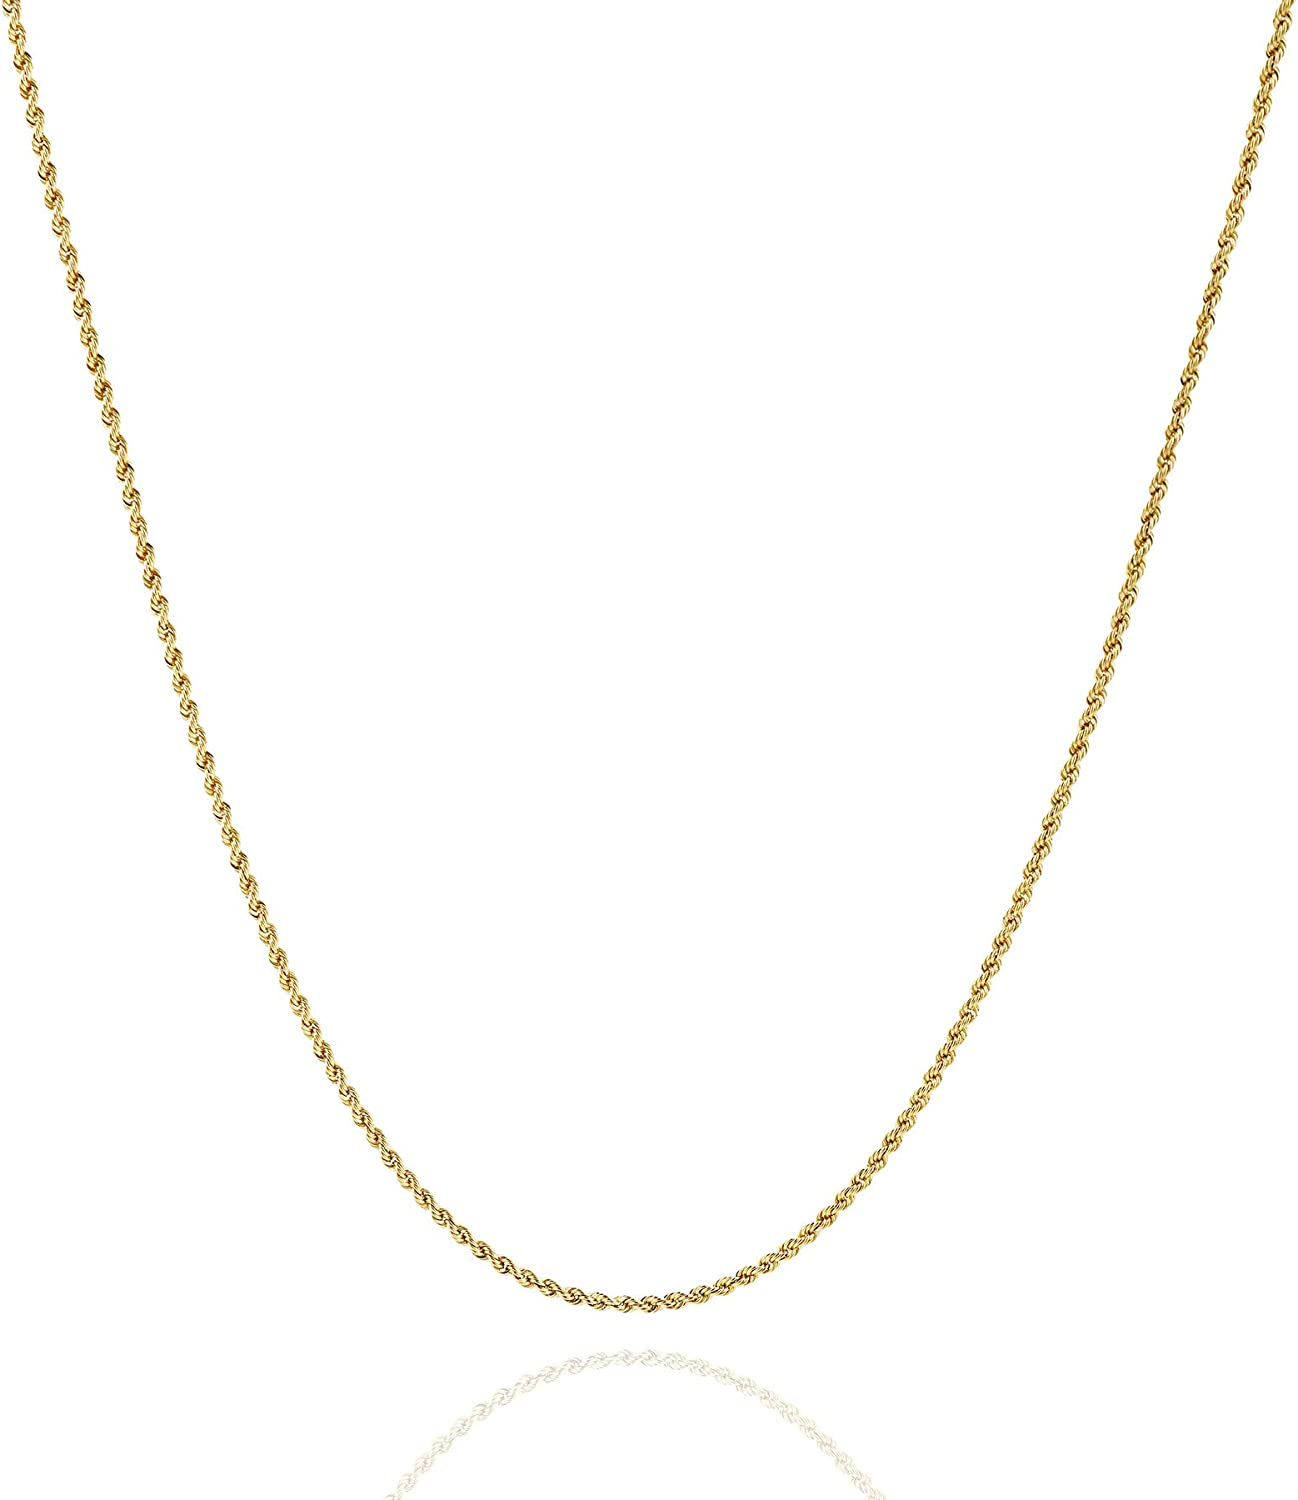 Jewelry Atelier Gold Chain Necklace Collection - 14K Solid Yellow Gold Filled Rope Chain Necklaces for Women and Men with Different Sizes (2.1mm, 2.7mm, or 3.8mm)